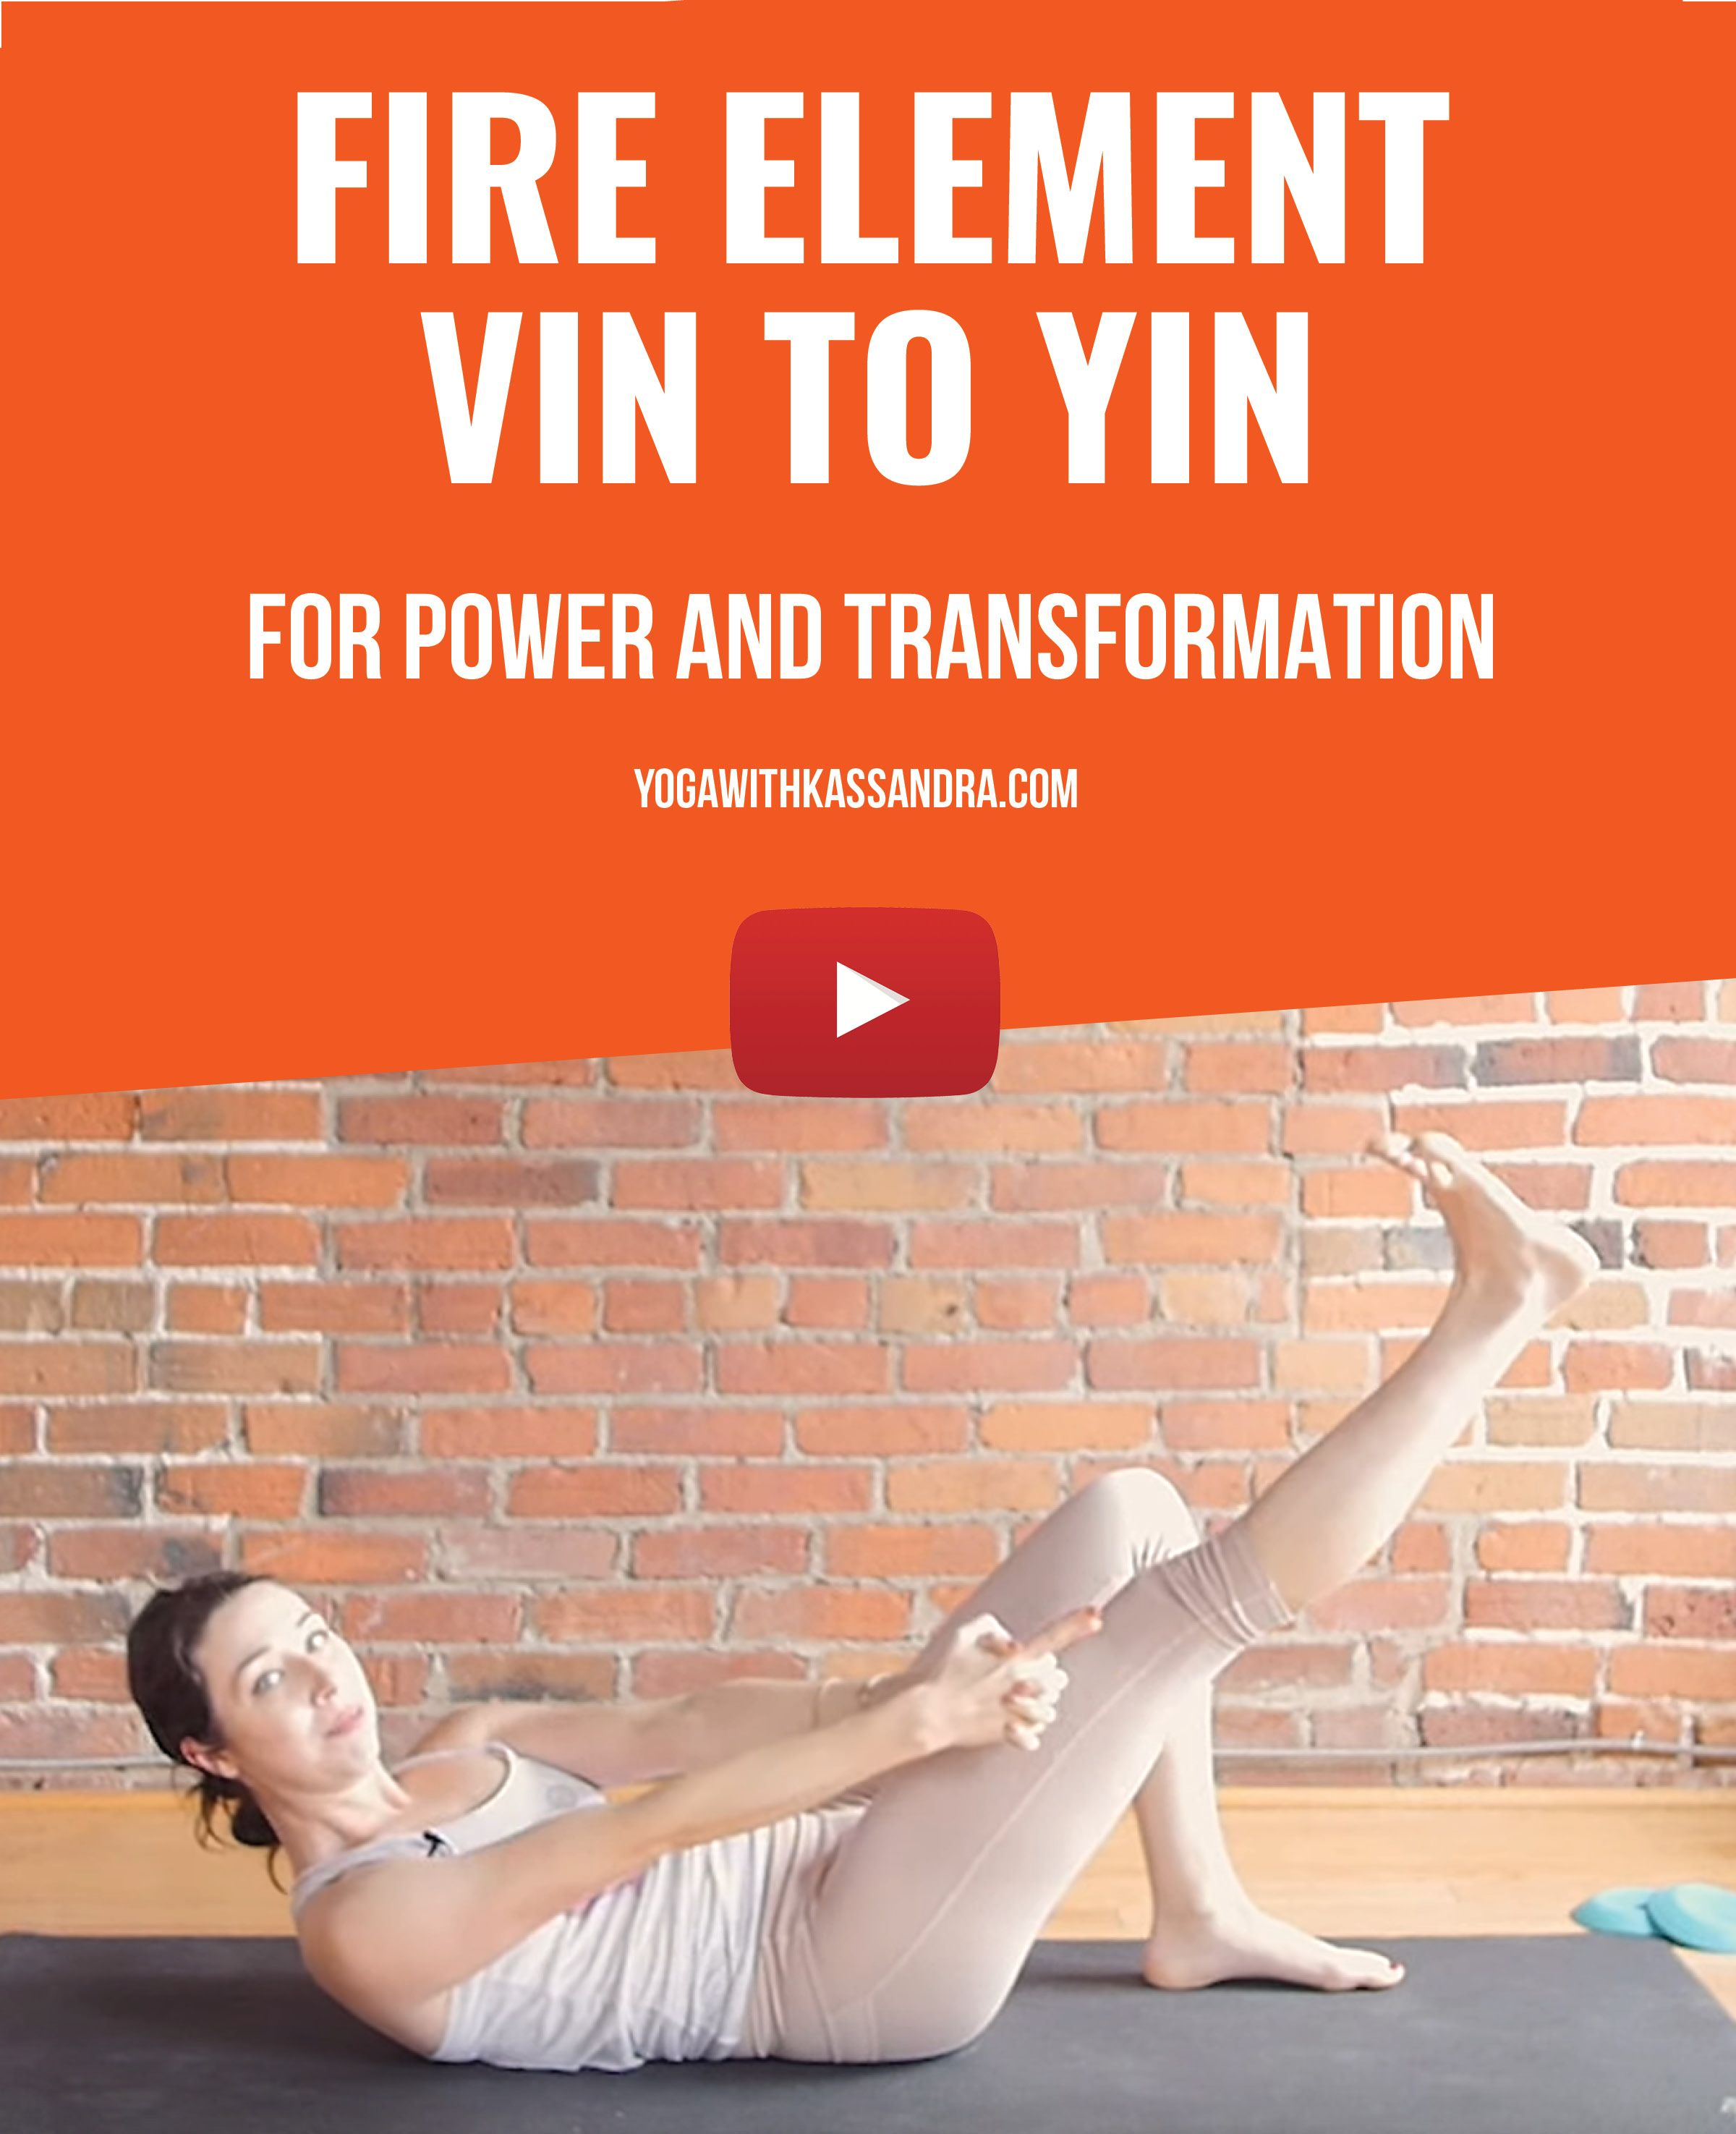 7 vin to yin poses for power transformation yin poses